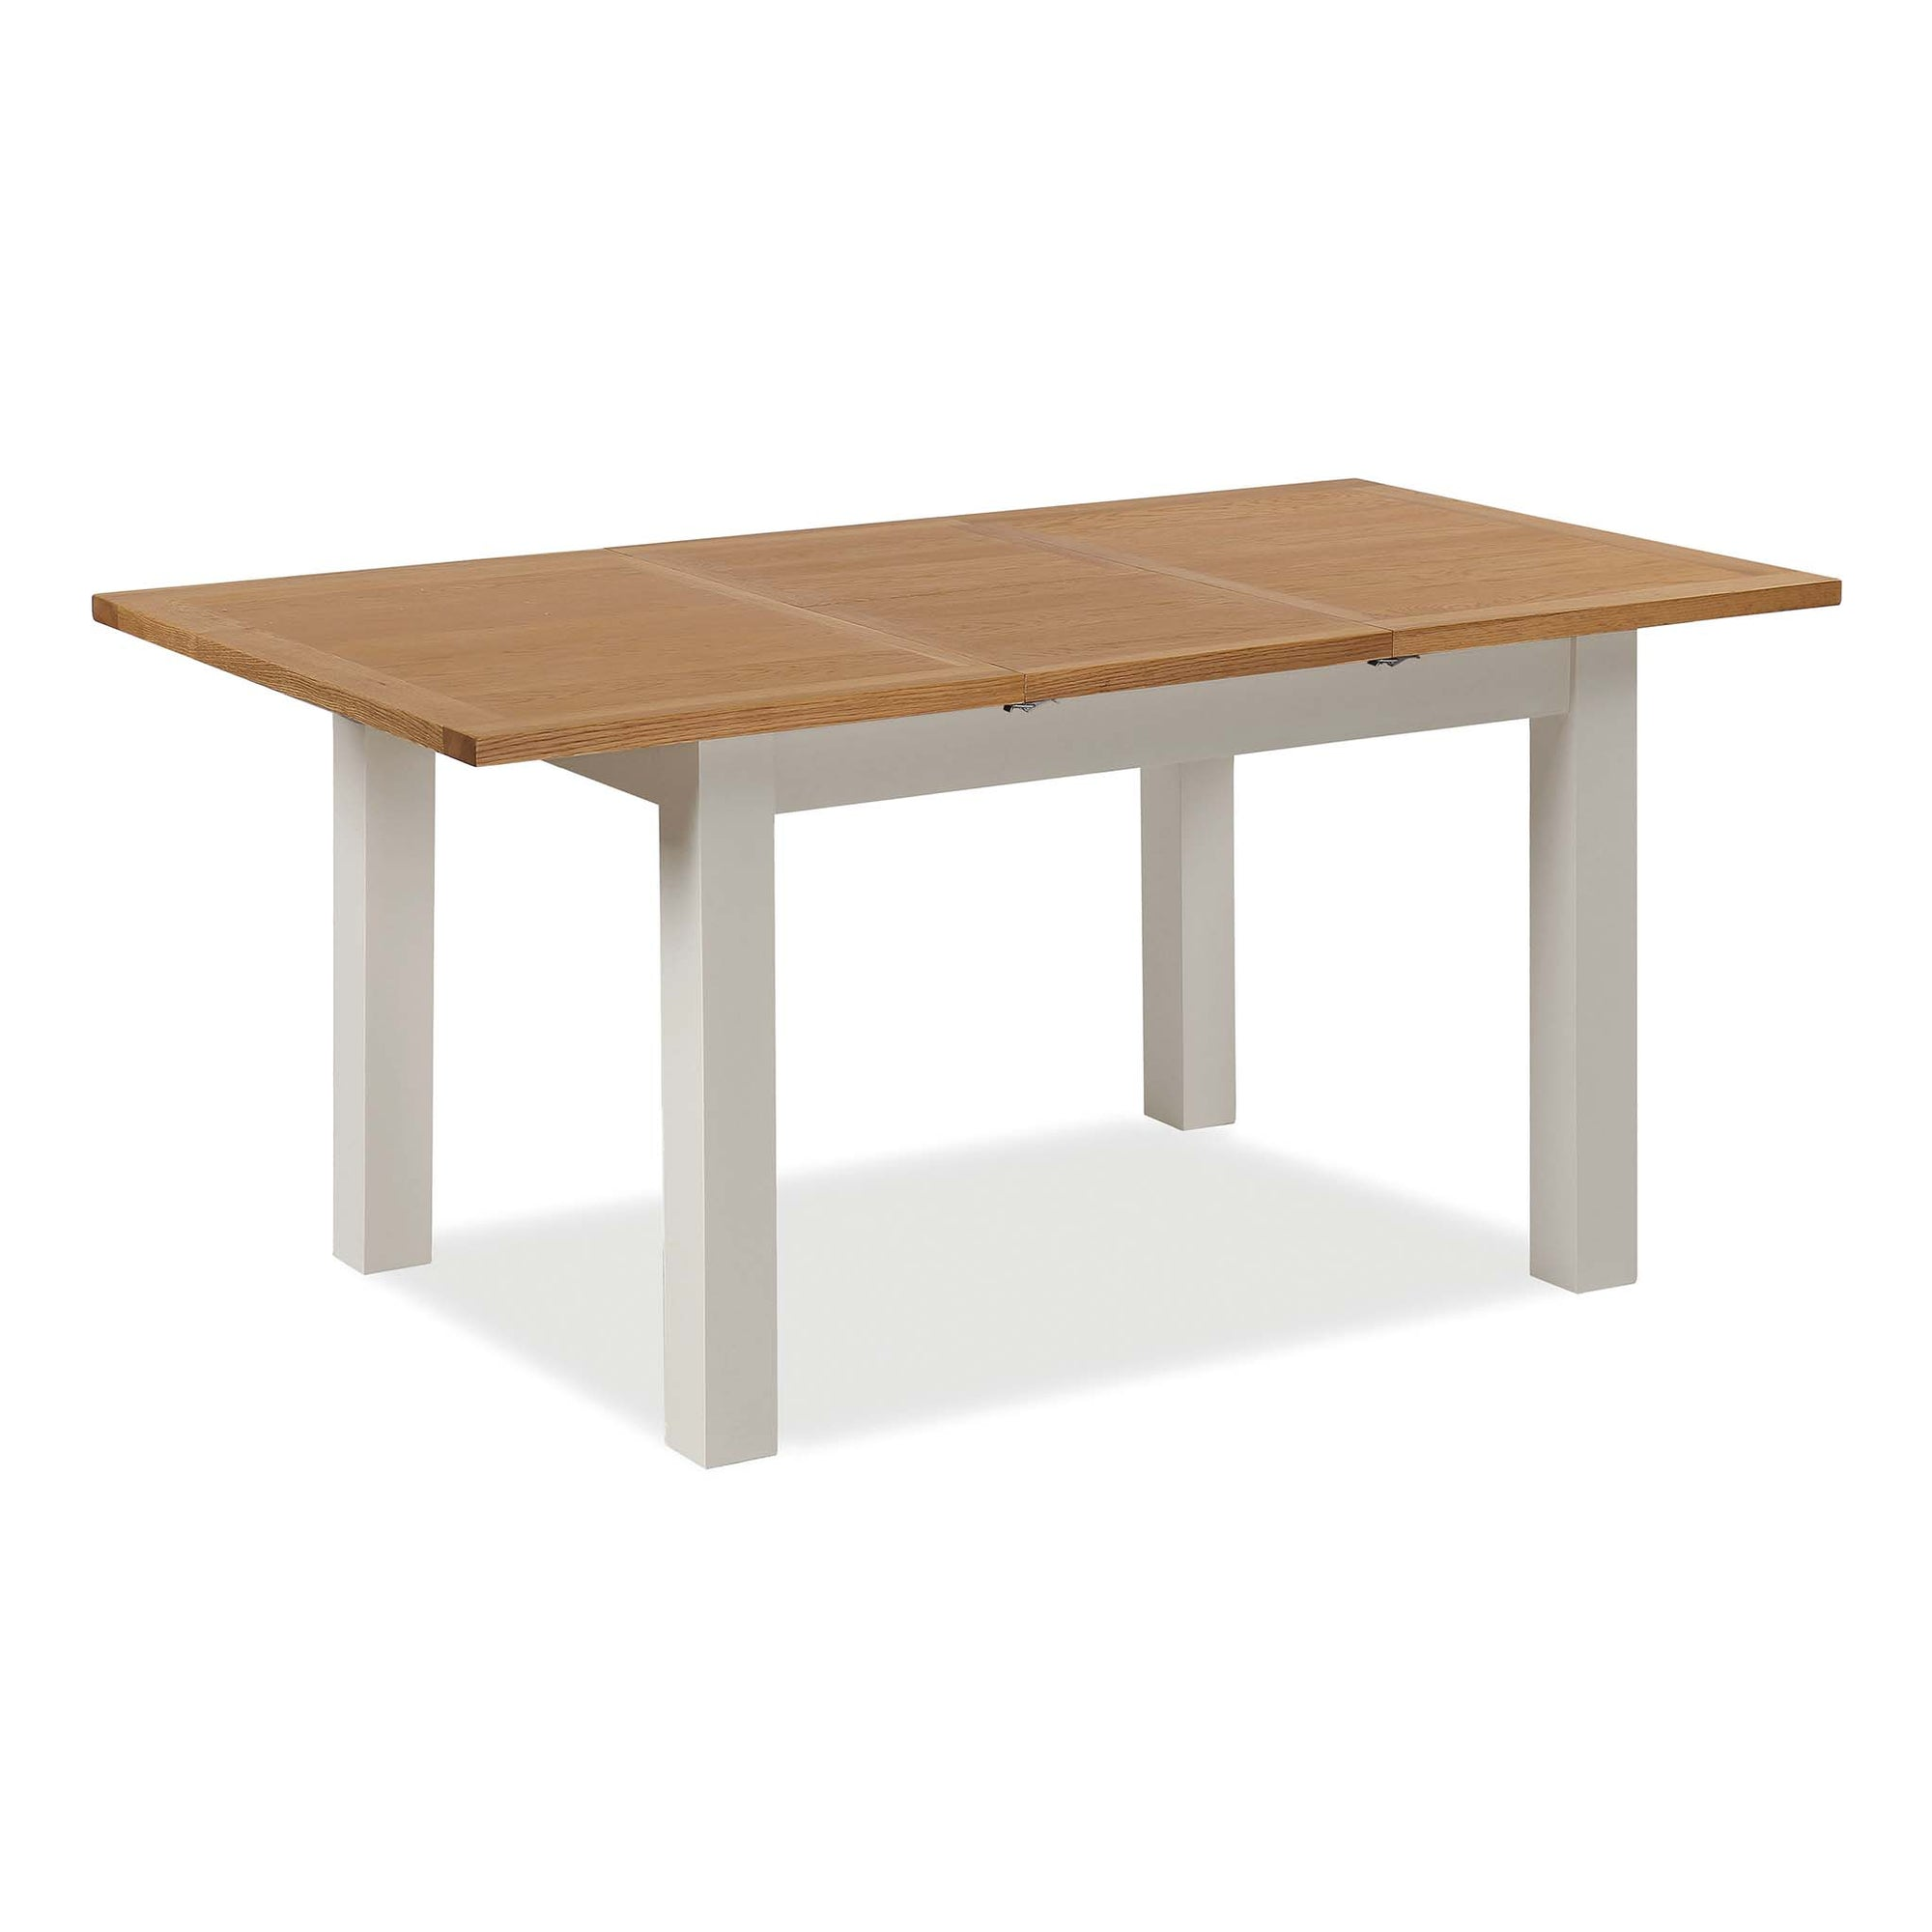 Dorset Stone Grey Compact Extending Dining Table by Roseland Furniture